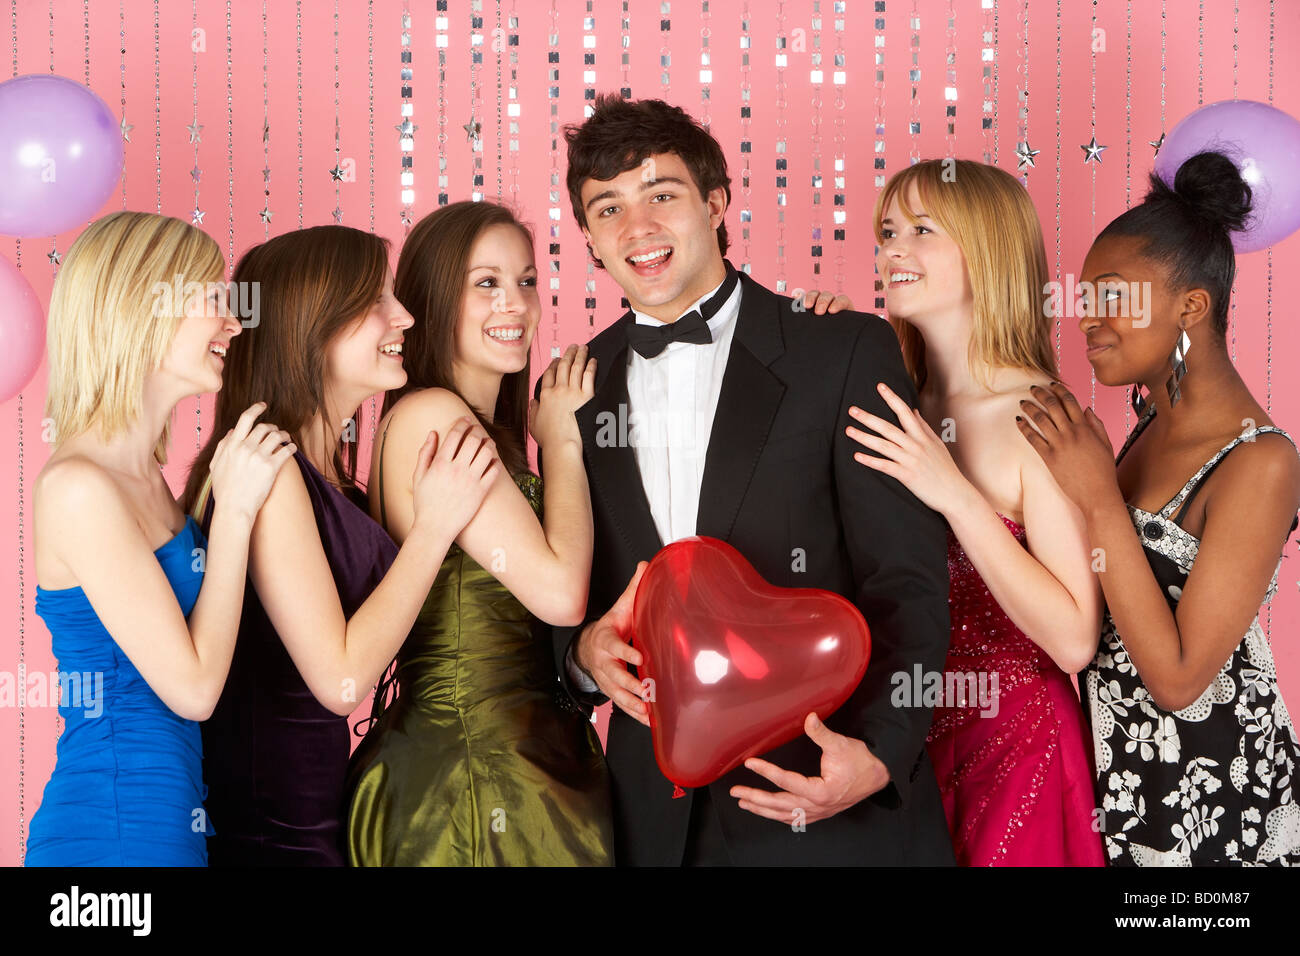 Teenage Girls Looking At Attractive Boy - Stock Image